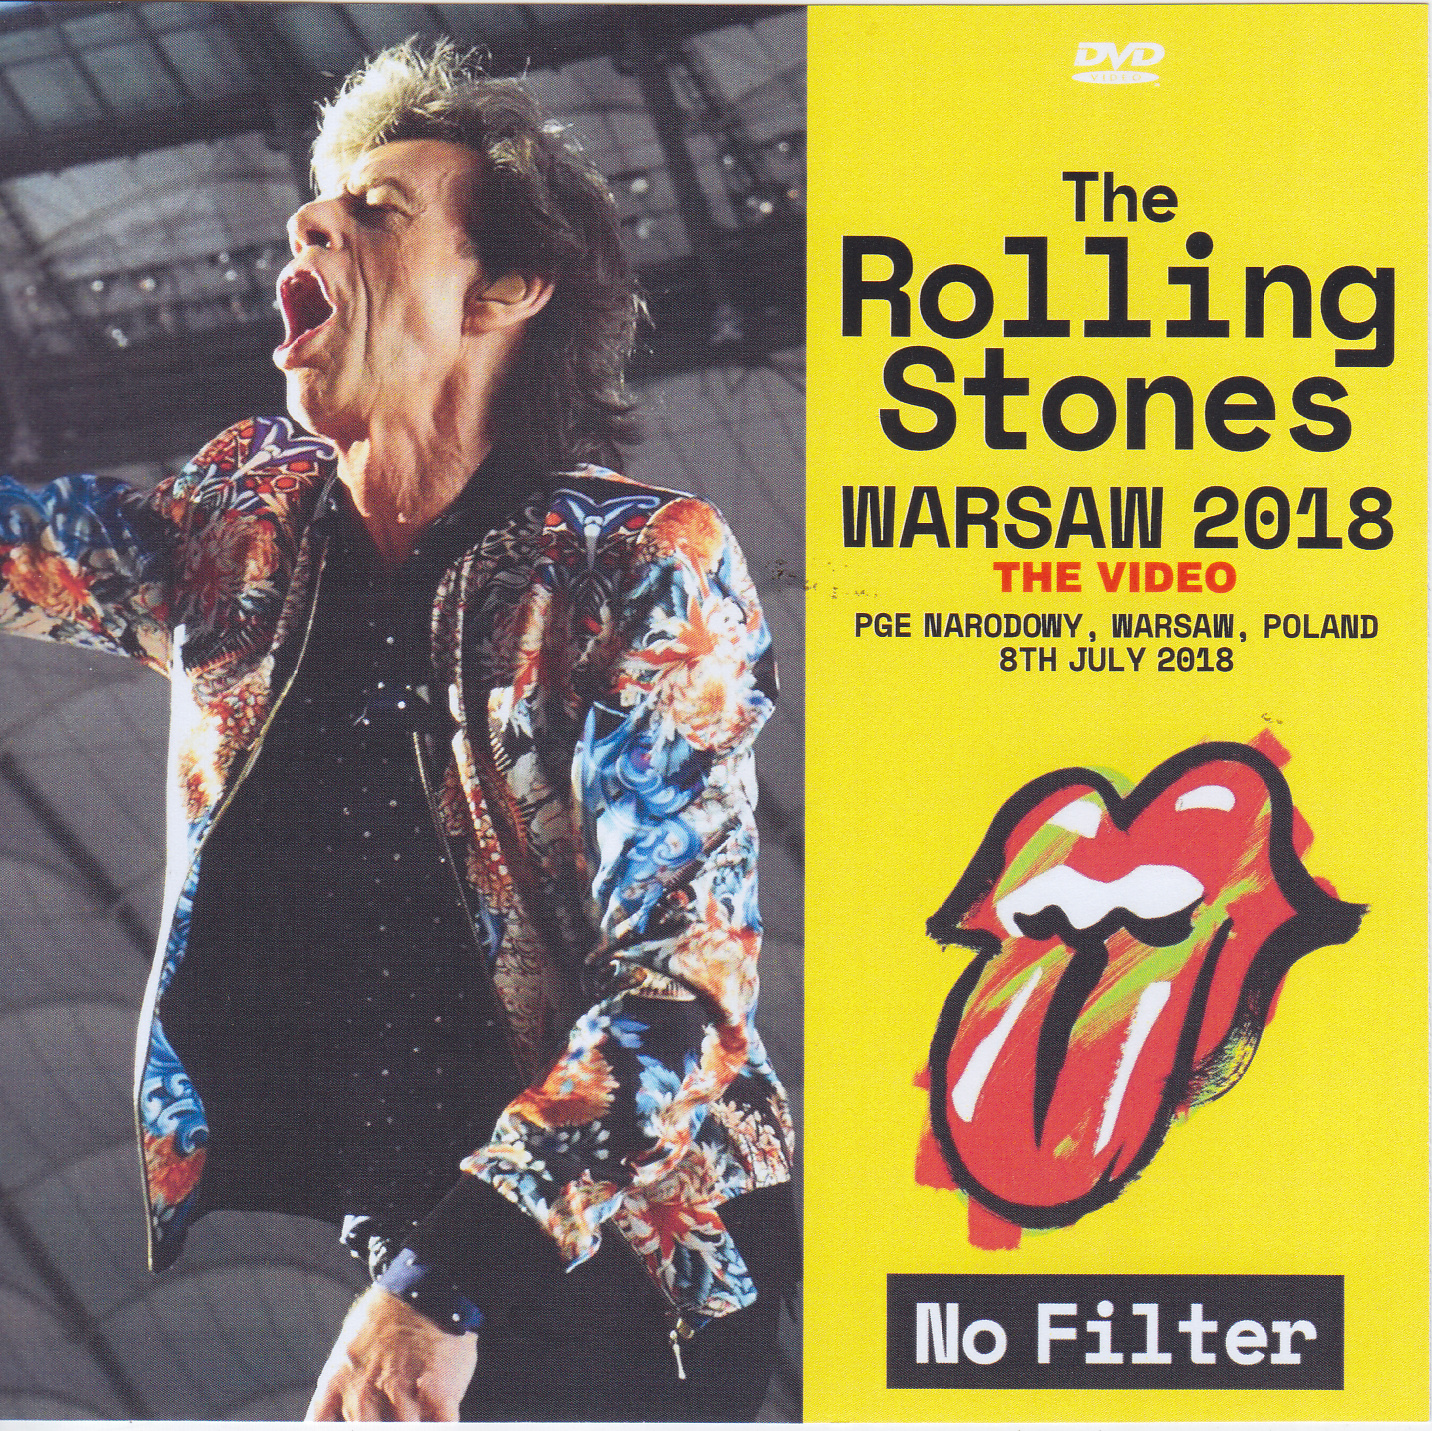 Rolling Stones, The - Warsaw 2018 The Video (1Single DVDR) Non Label